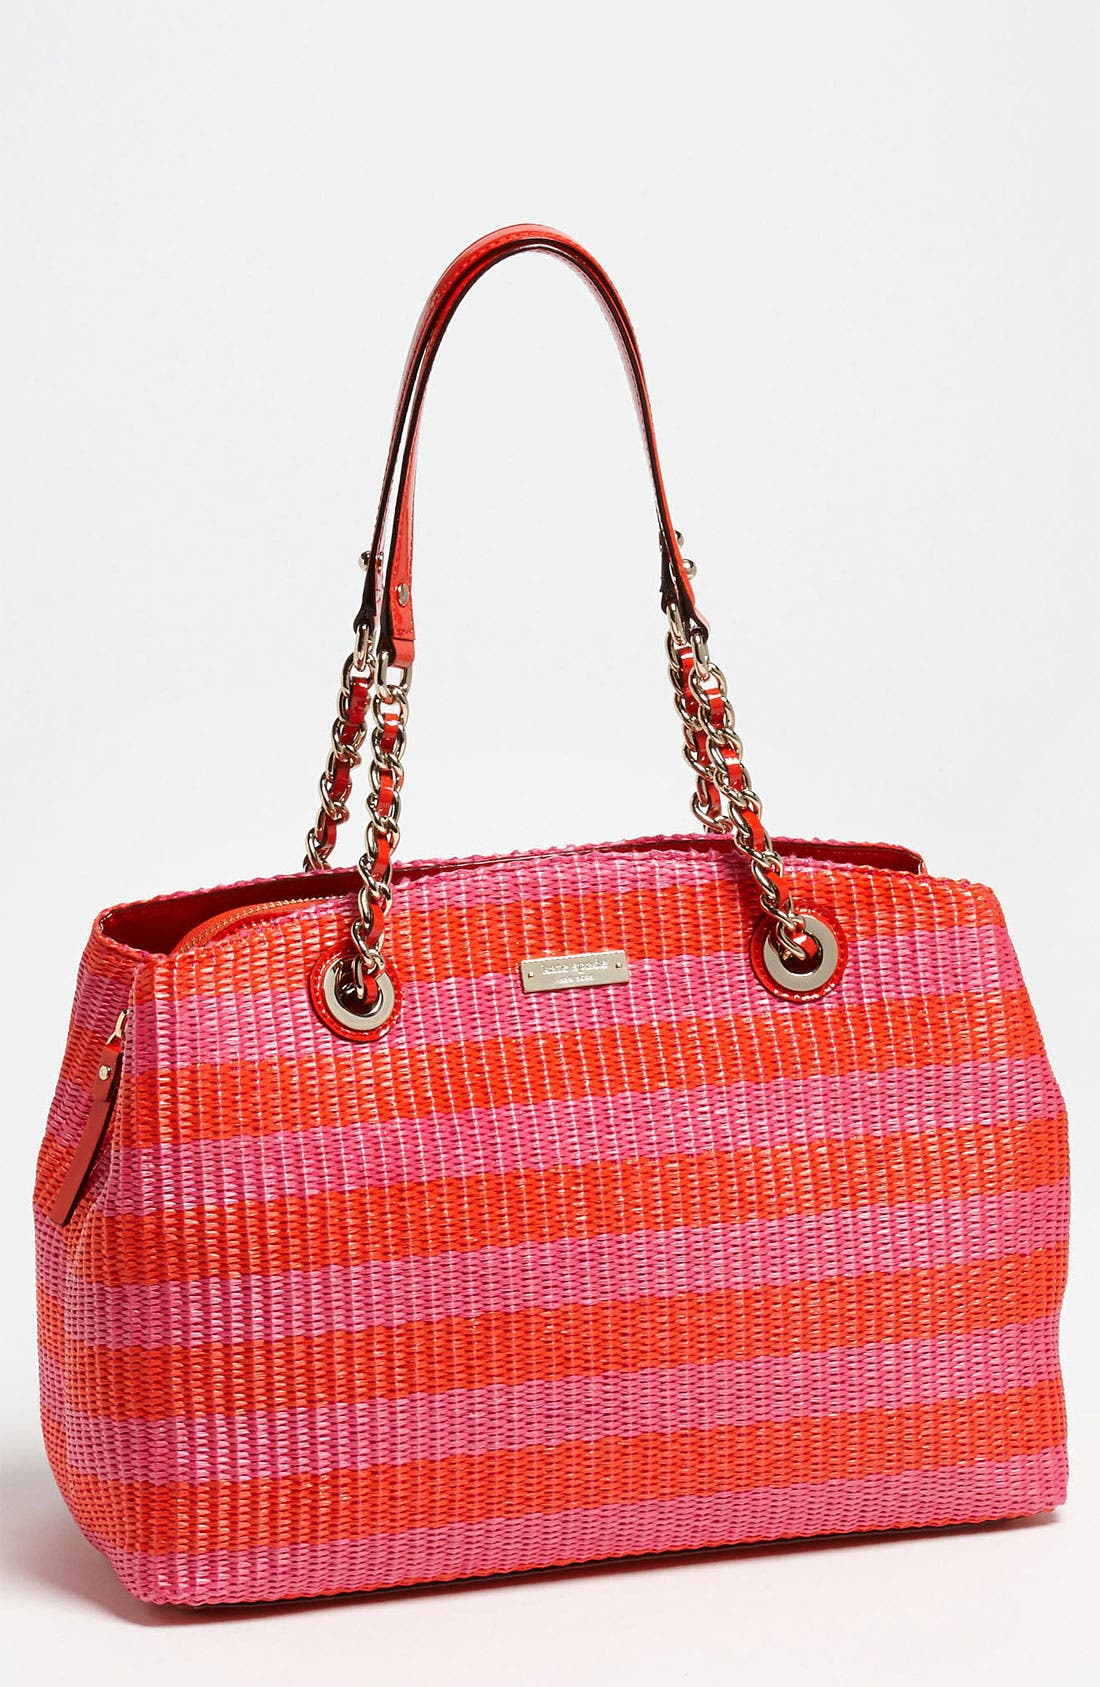 Alternate Image 1 Selected - kate spade new york 'pacific heights - sloan' raffia shoulder bag